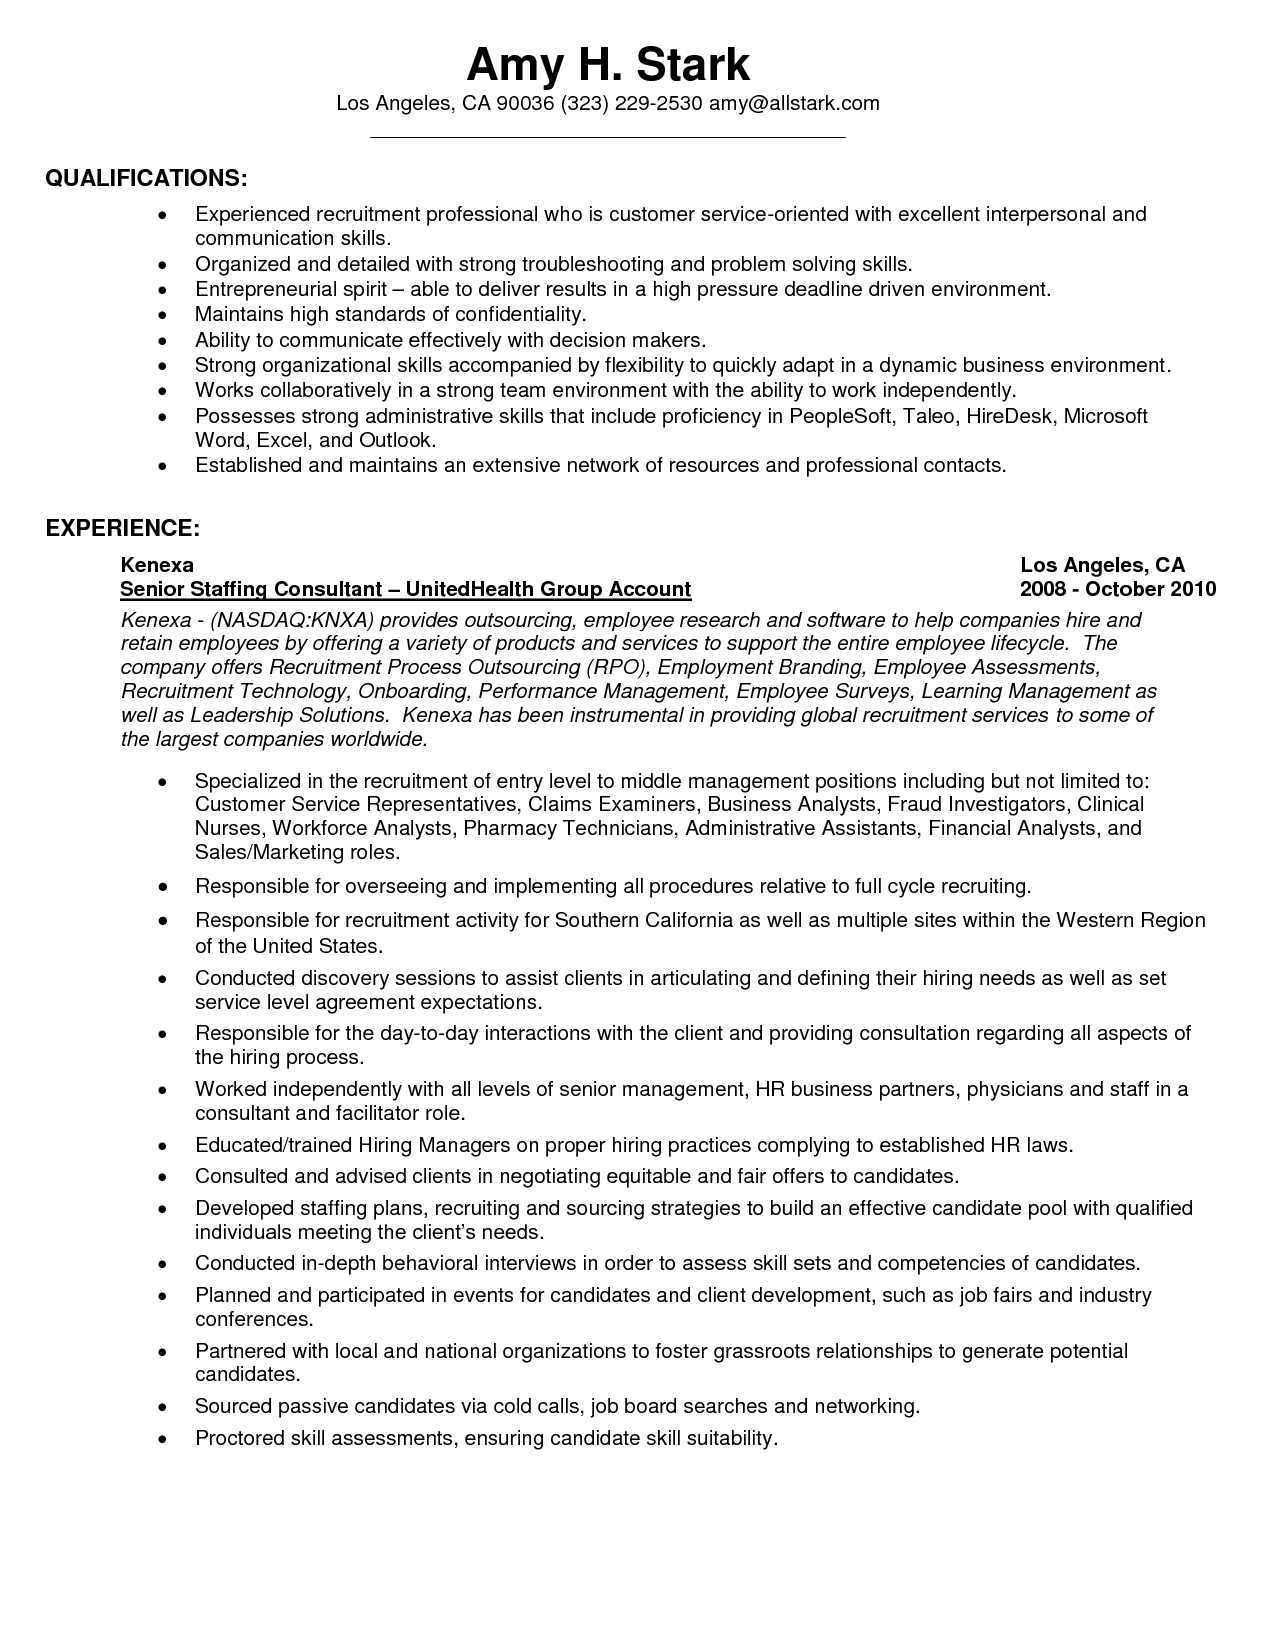 Food Service Worker Resume Excellent Customer Service Skills Resume  Sample Resume Center